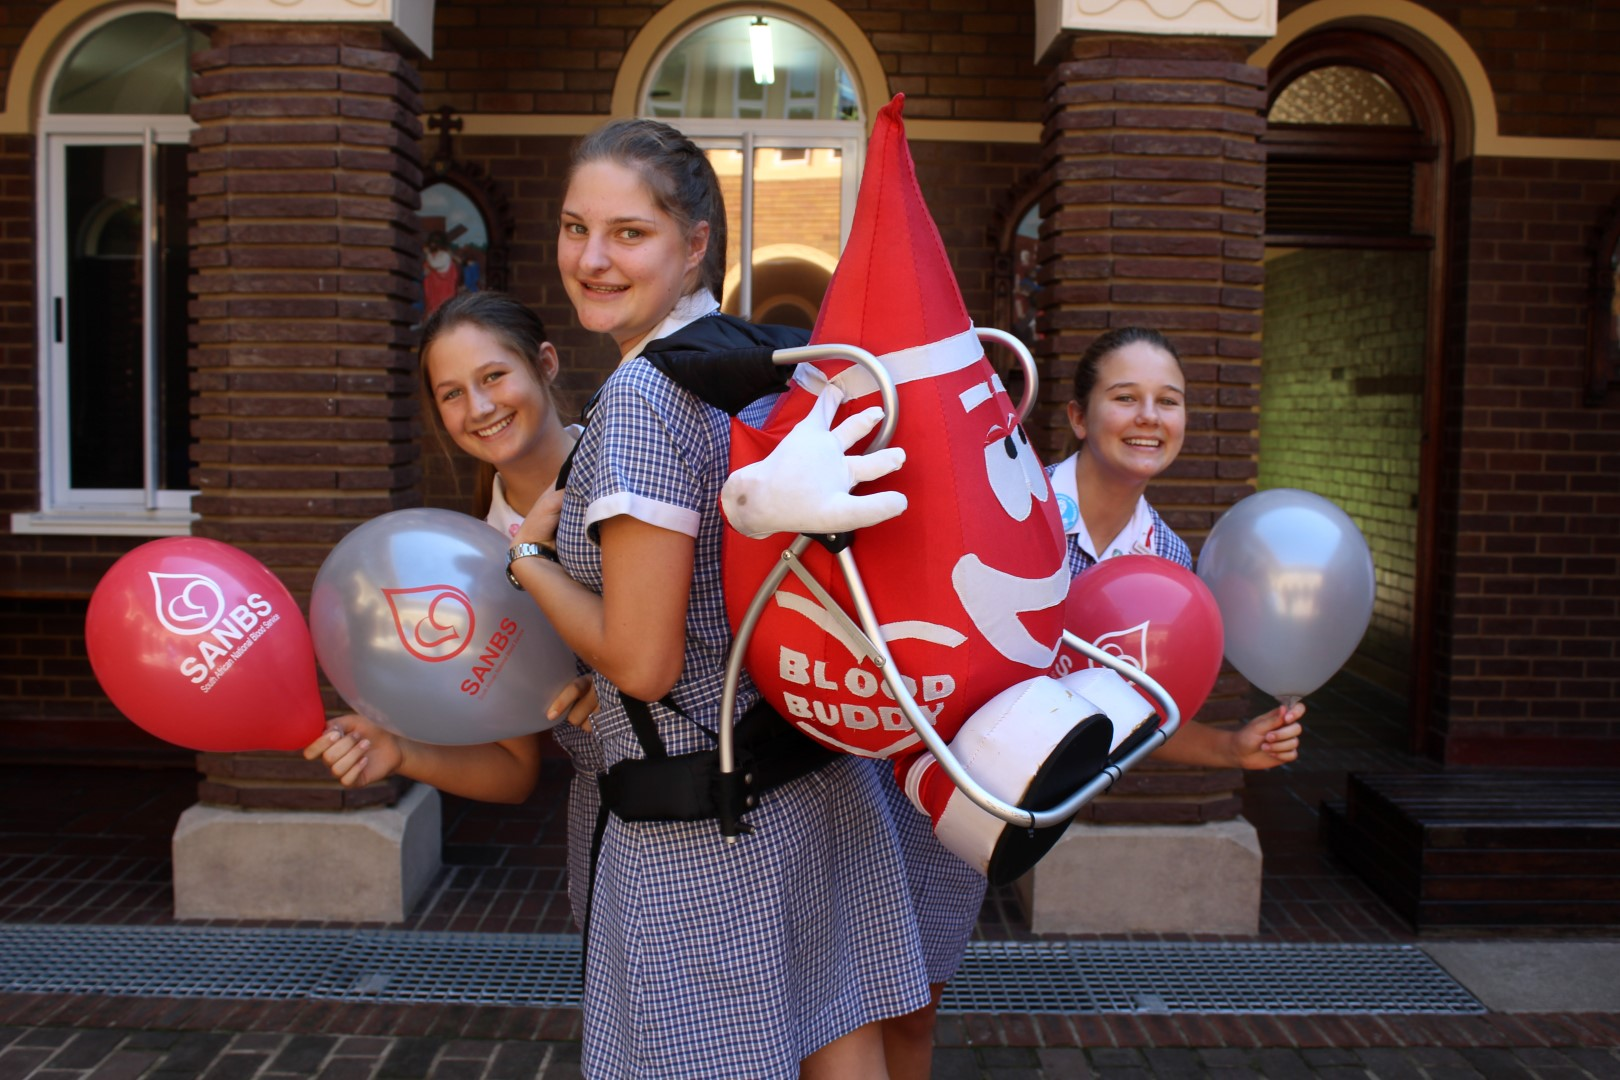 Sarah Rich, Caitlin Slade, and Hannah James urge residents to come out and support the school's blood drive on Wednesday, 29 March from 9am to 5pm at the Parish Hall.